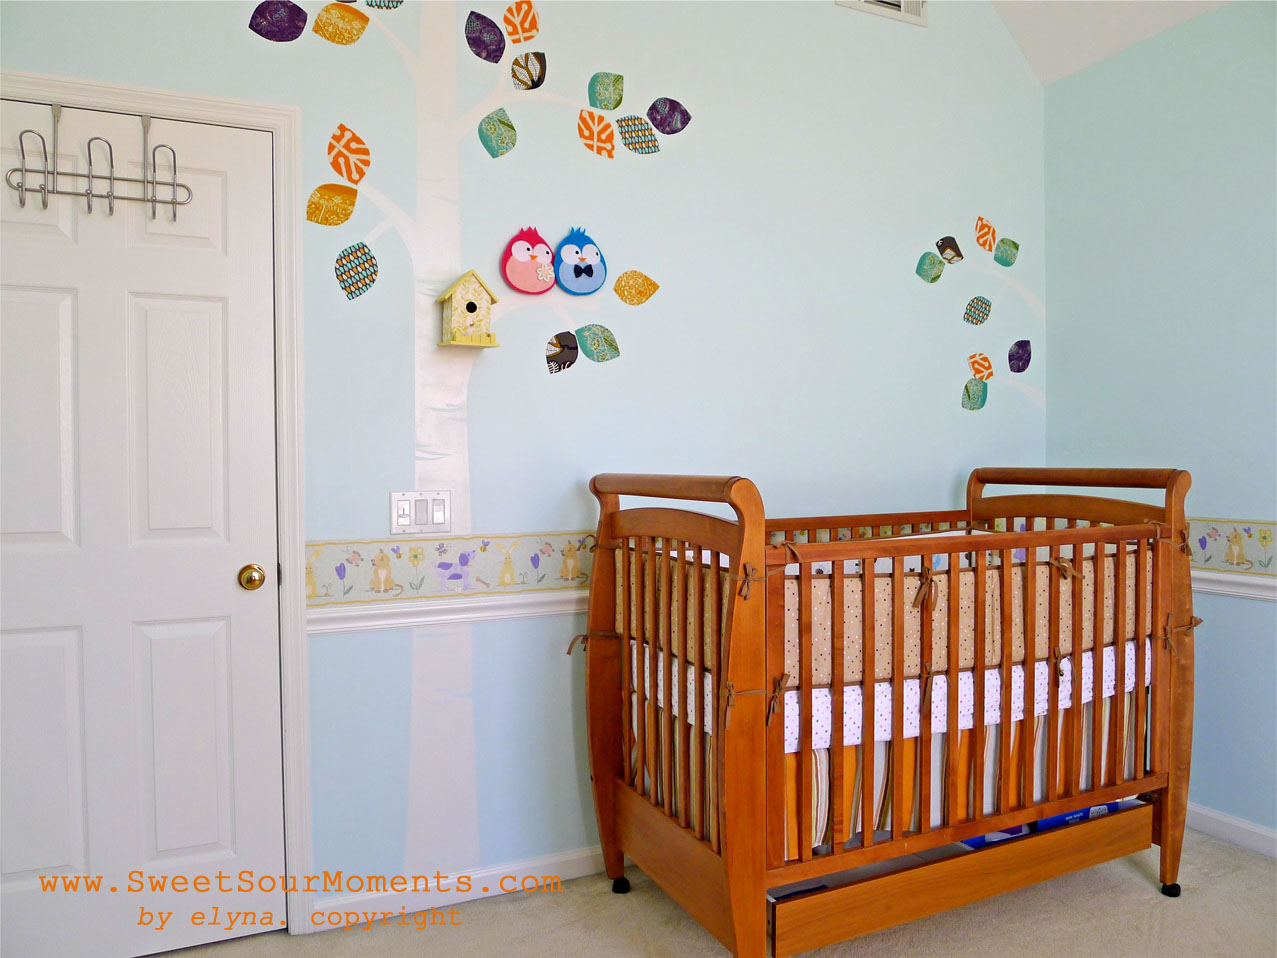 Wall mural sweetsourmoments baby nursery wall 1 amipublicfo Image collections